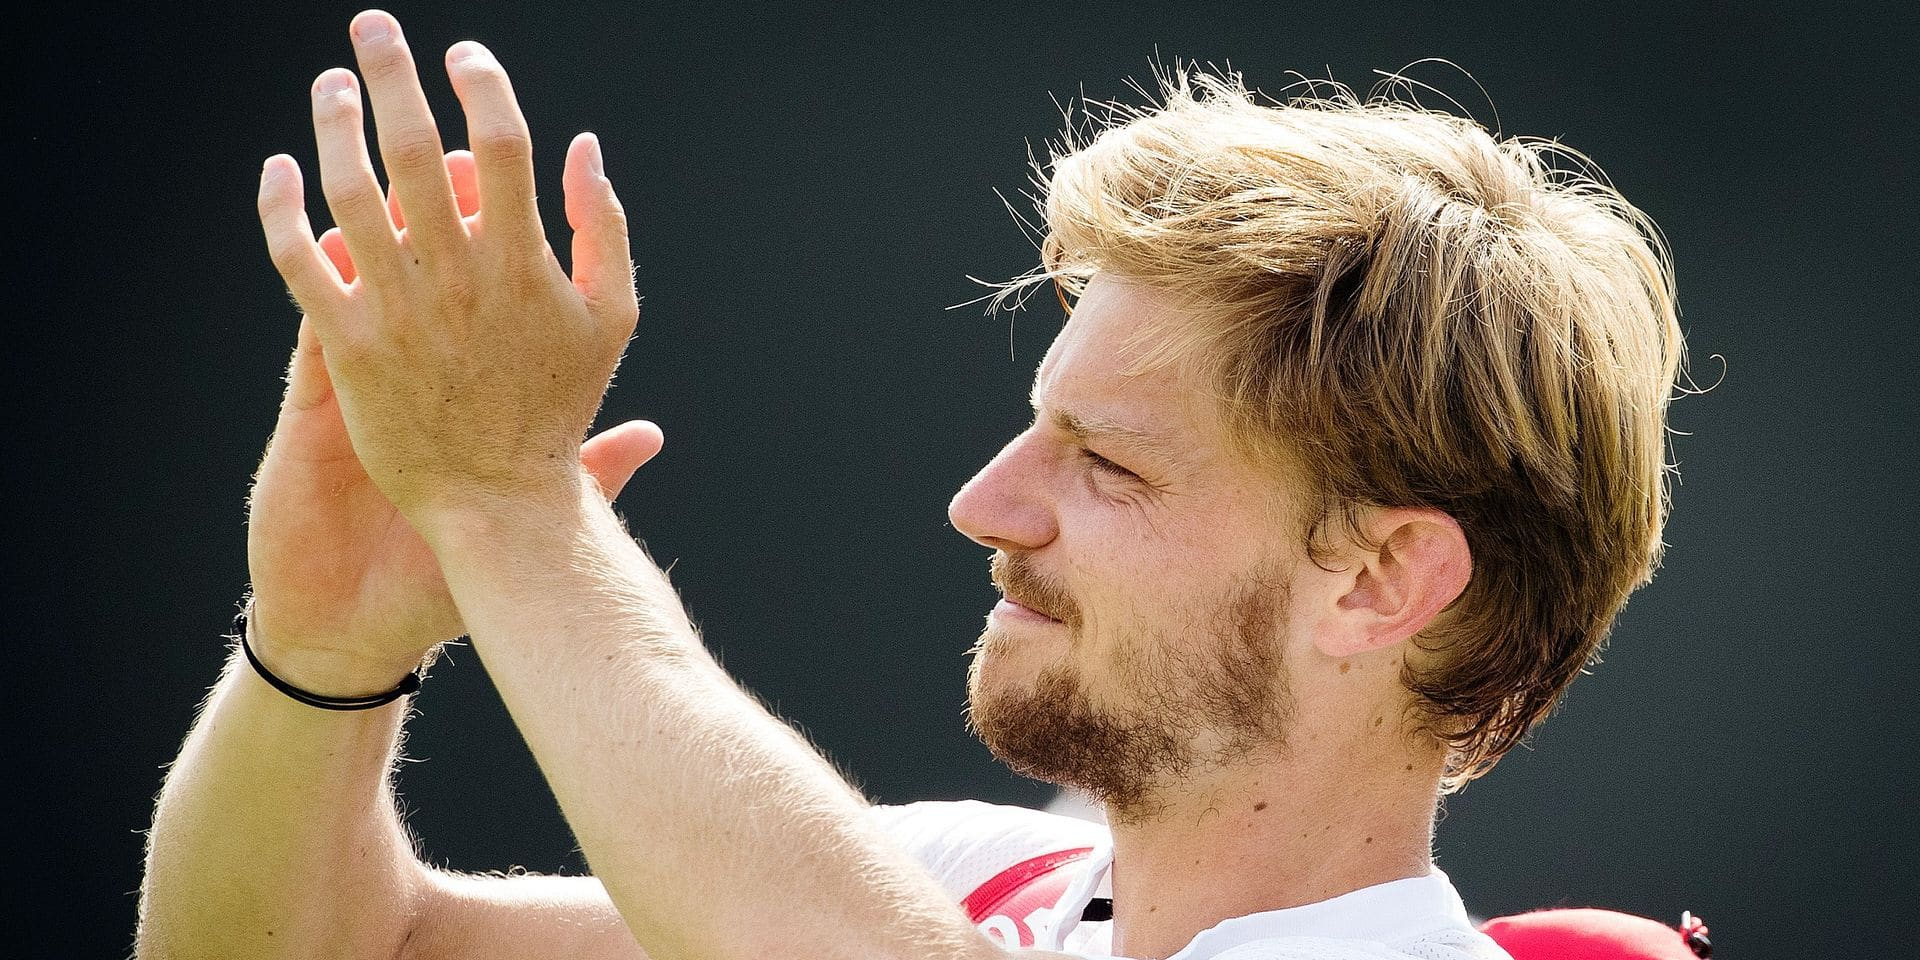 Belgian David Goffin celebrates after winning a tennis match between Belgian David Goffin (ATP23) and Spanish Fernando Verdasco (ATP37) in the men's singles fourth round at the 2019 Wimbledon grand slam tennis tournament at the All England Tennis Club, in south-west London, Britain, Monday 08 July 2019. BELGA PHOTO BENOIT DOPPAGNE